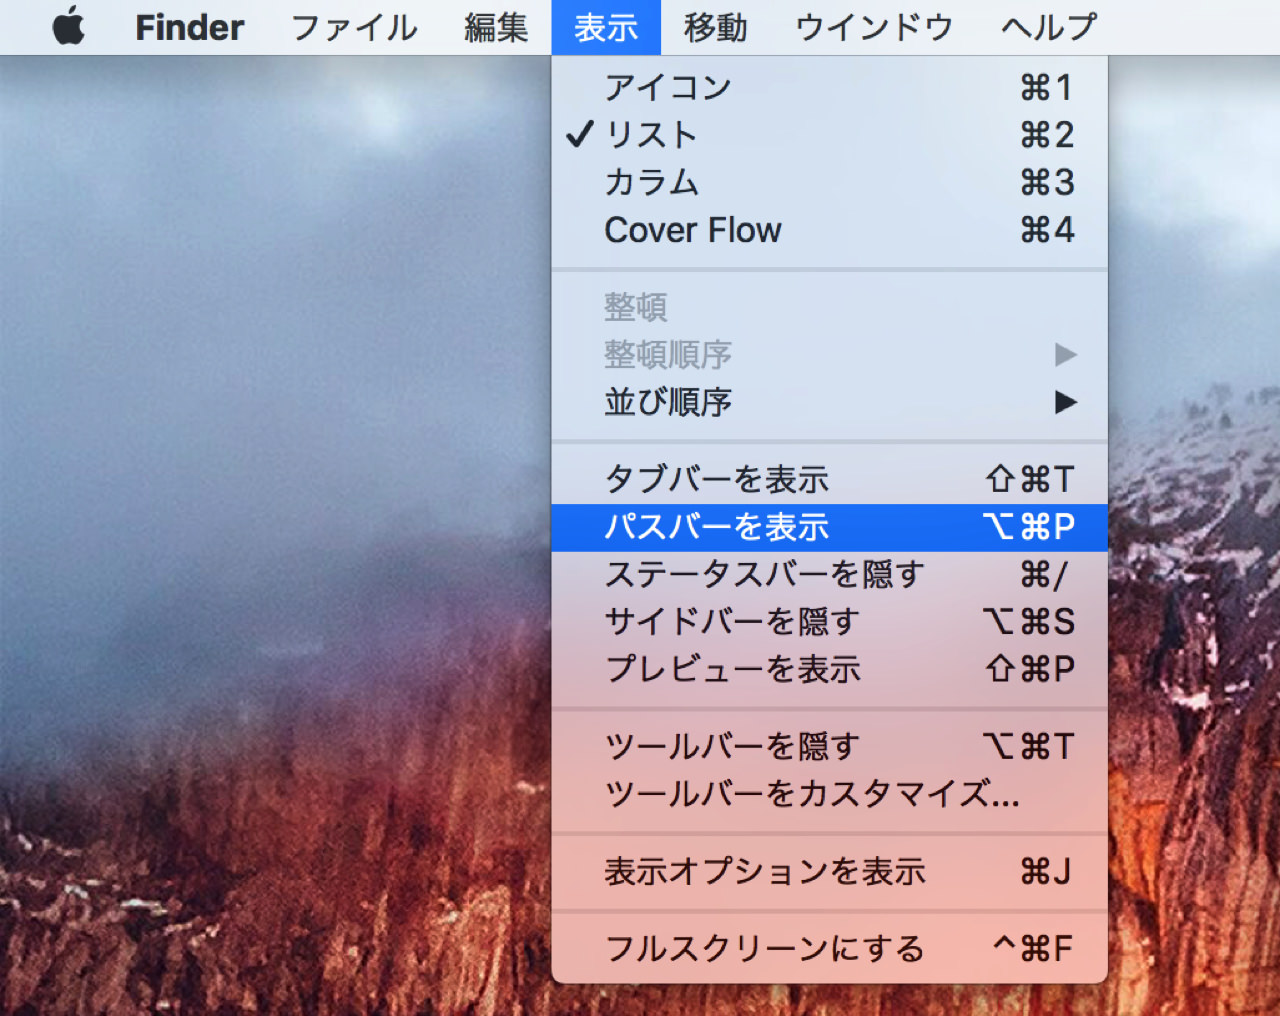 How to open new window folder finder path bar1